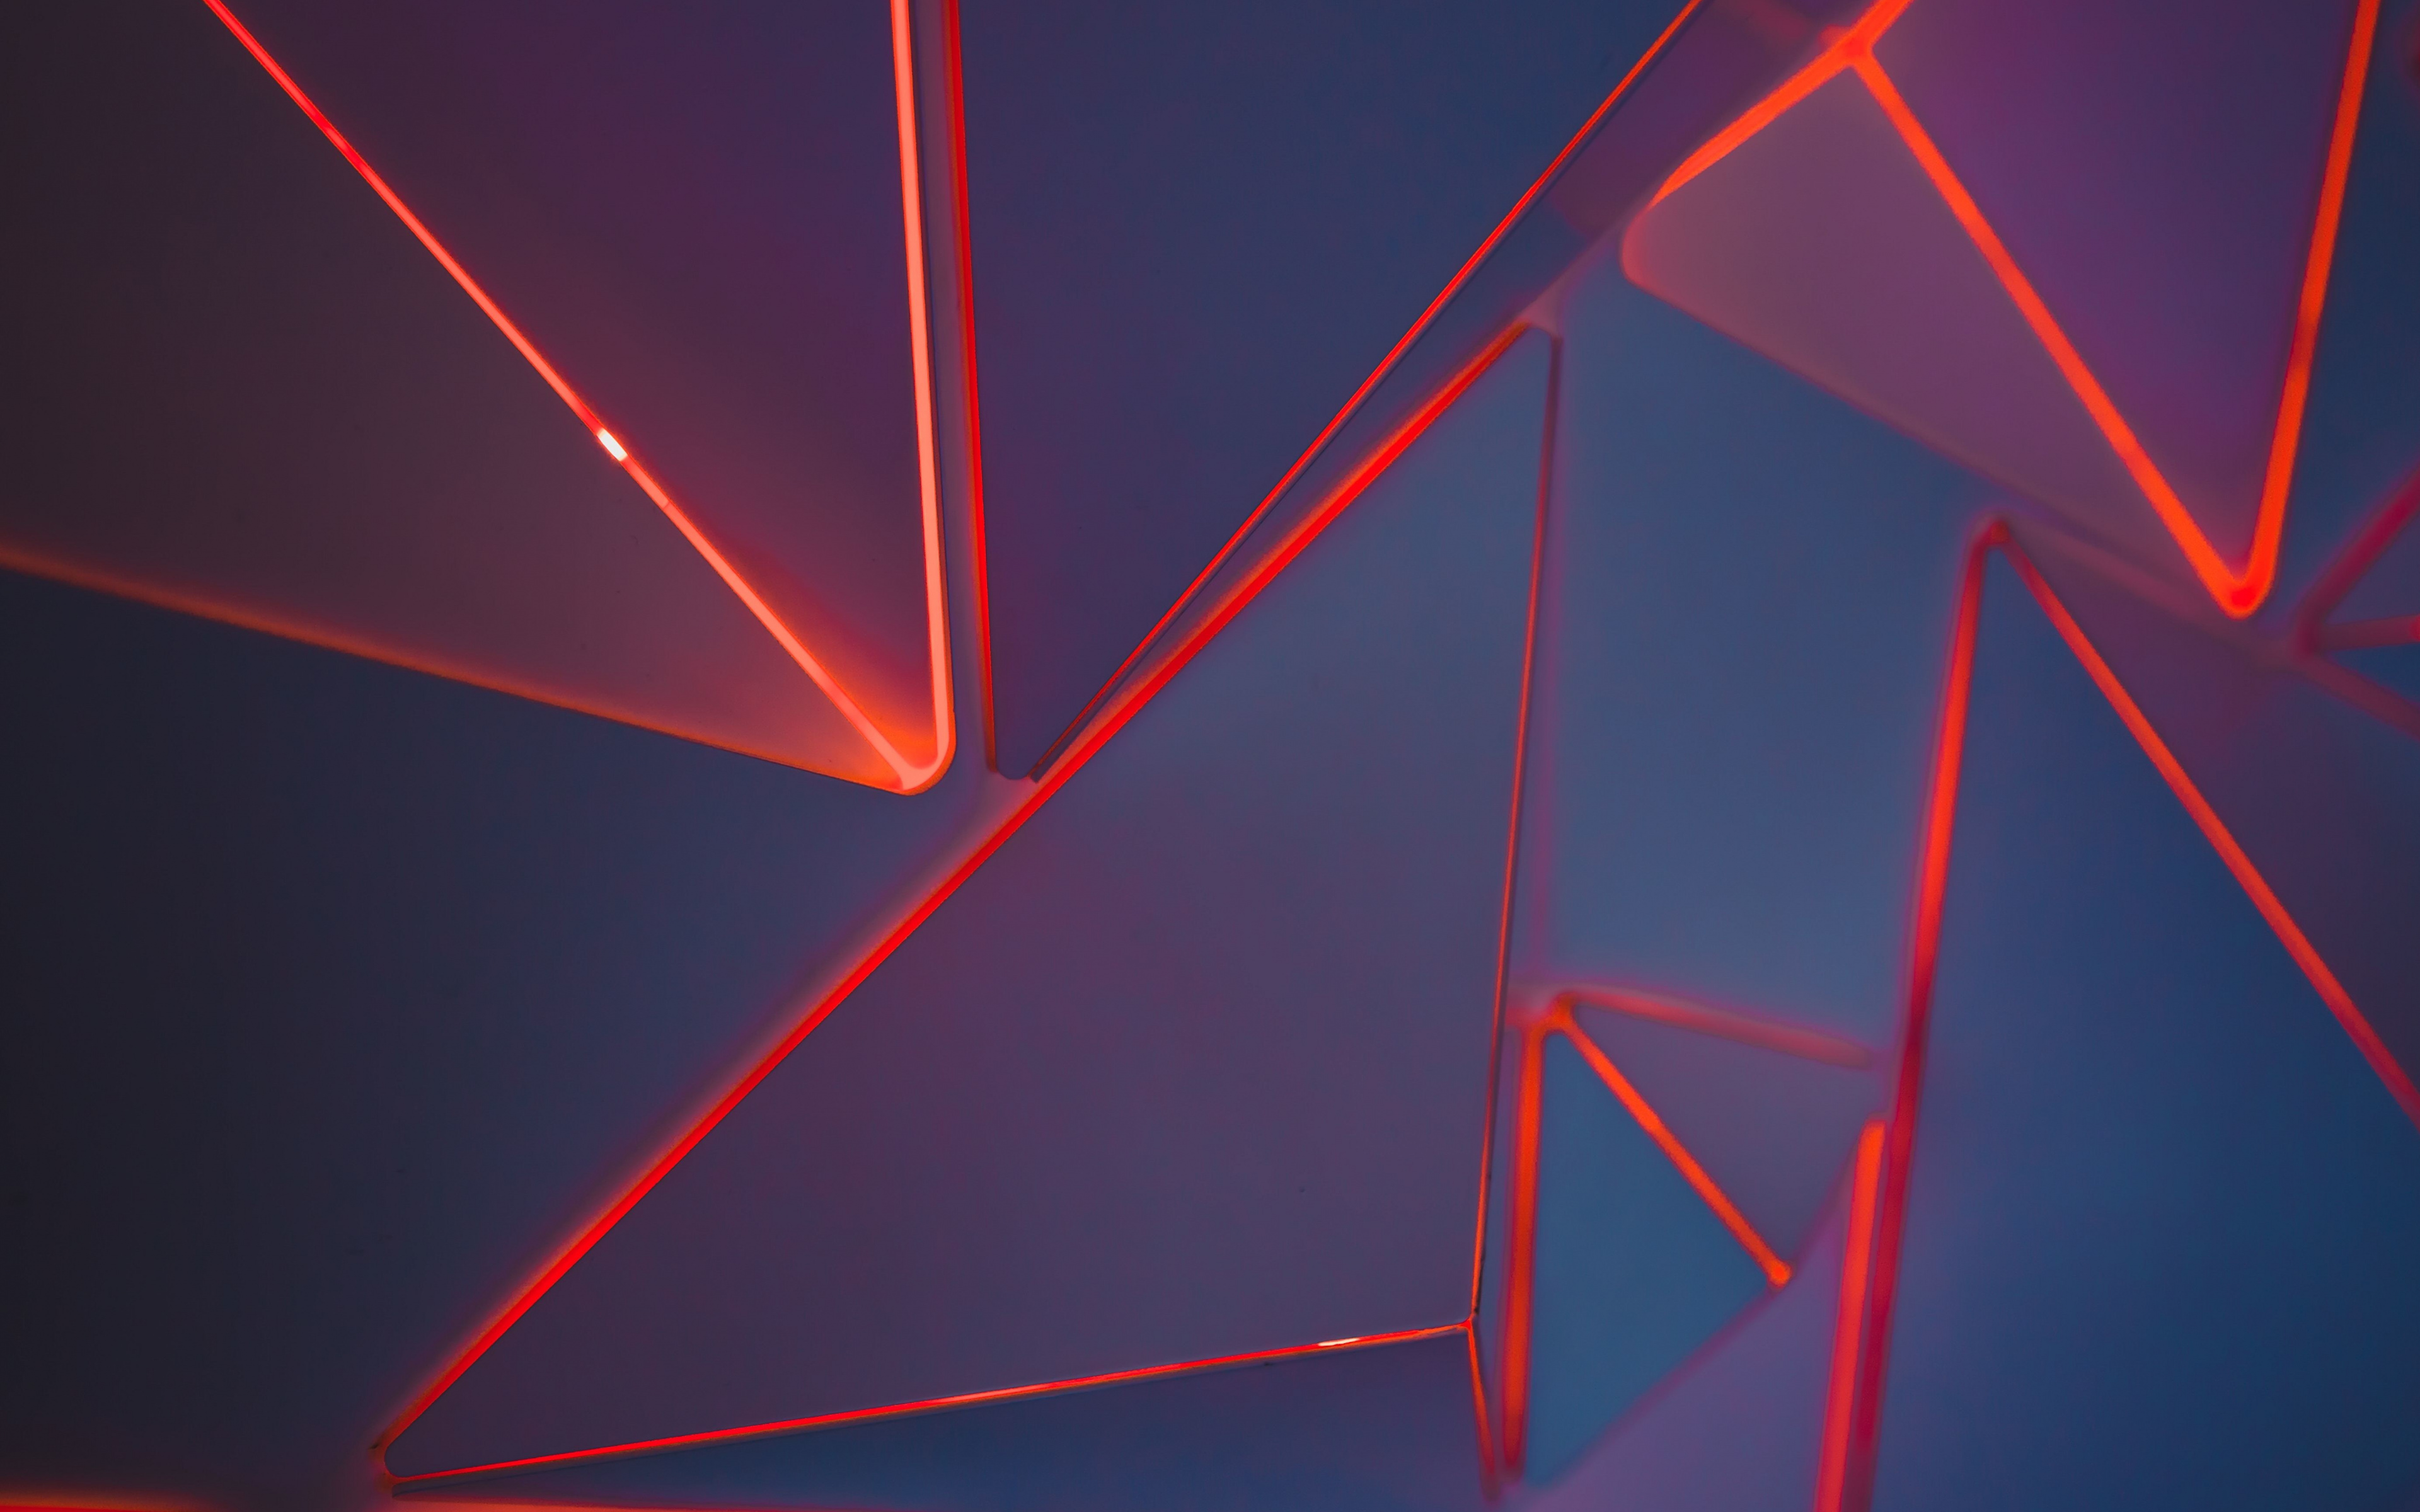 Red Neon Triangles Geometric Pattern Wallpaper Neon Geometric 851340 Hd Wallpaper Backgrounds Download